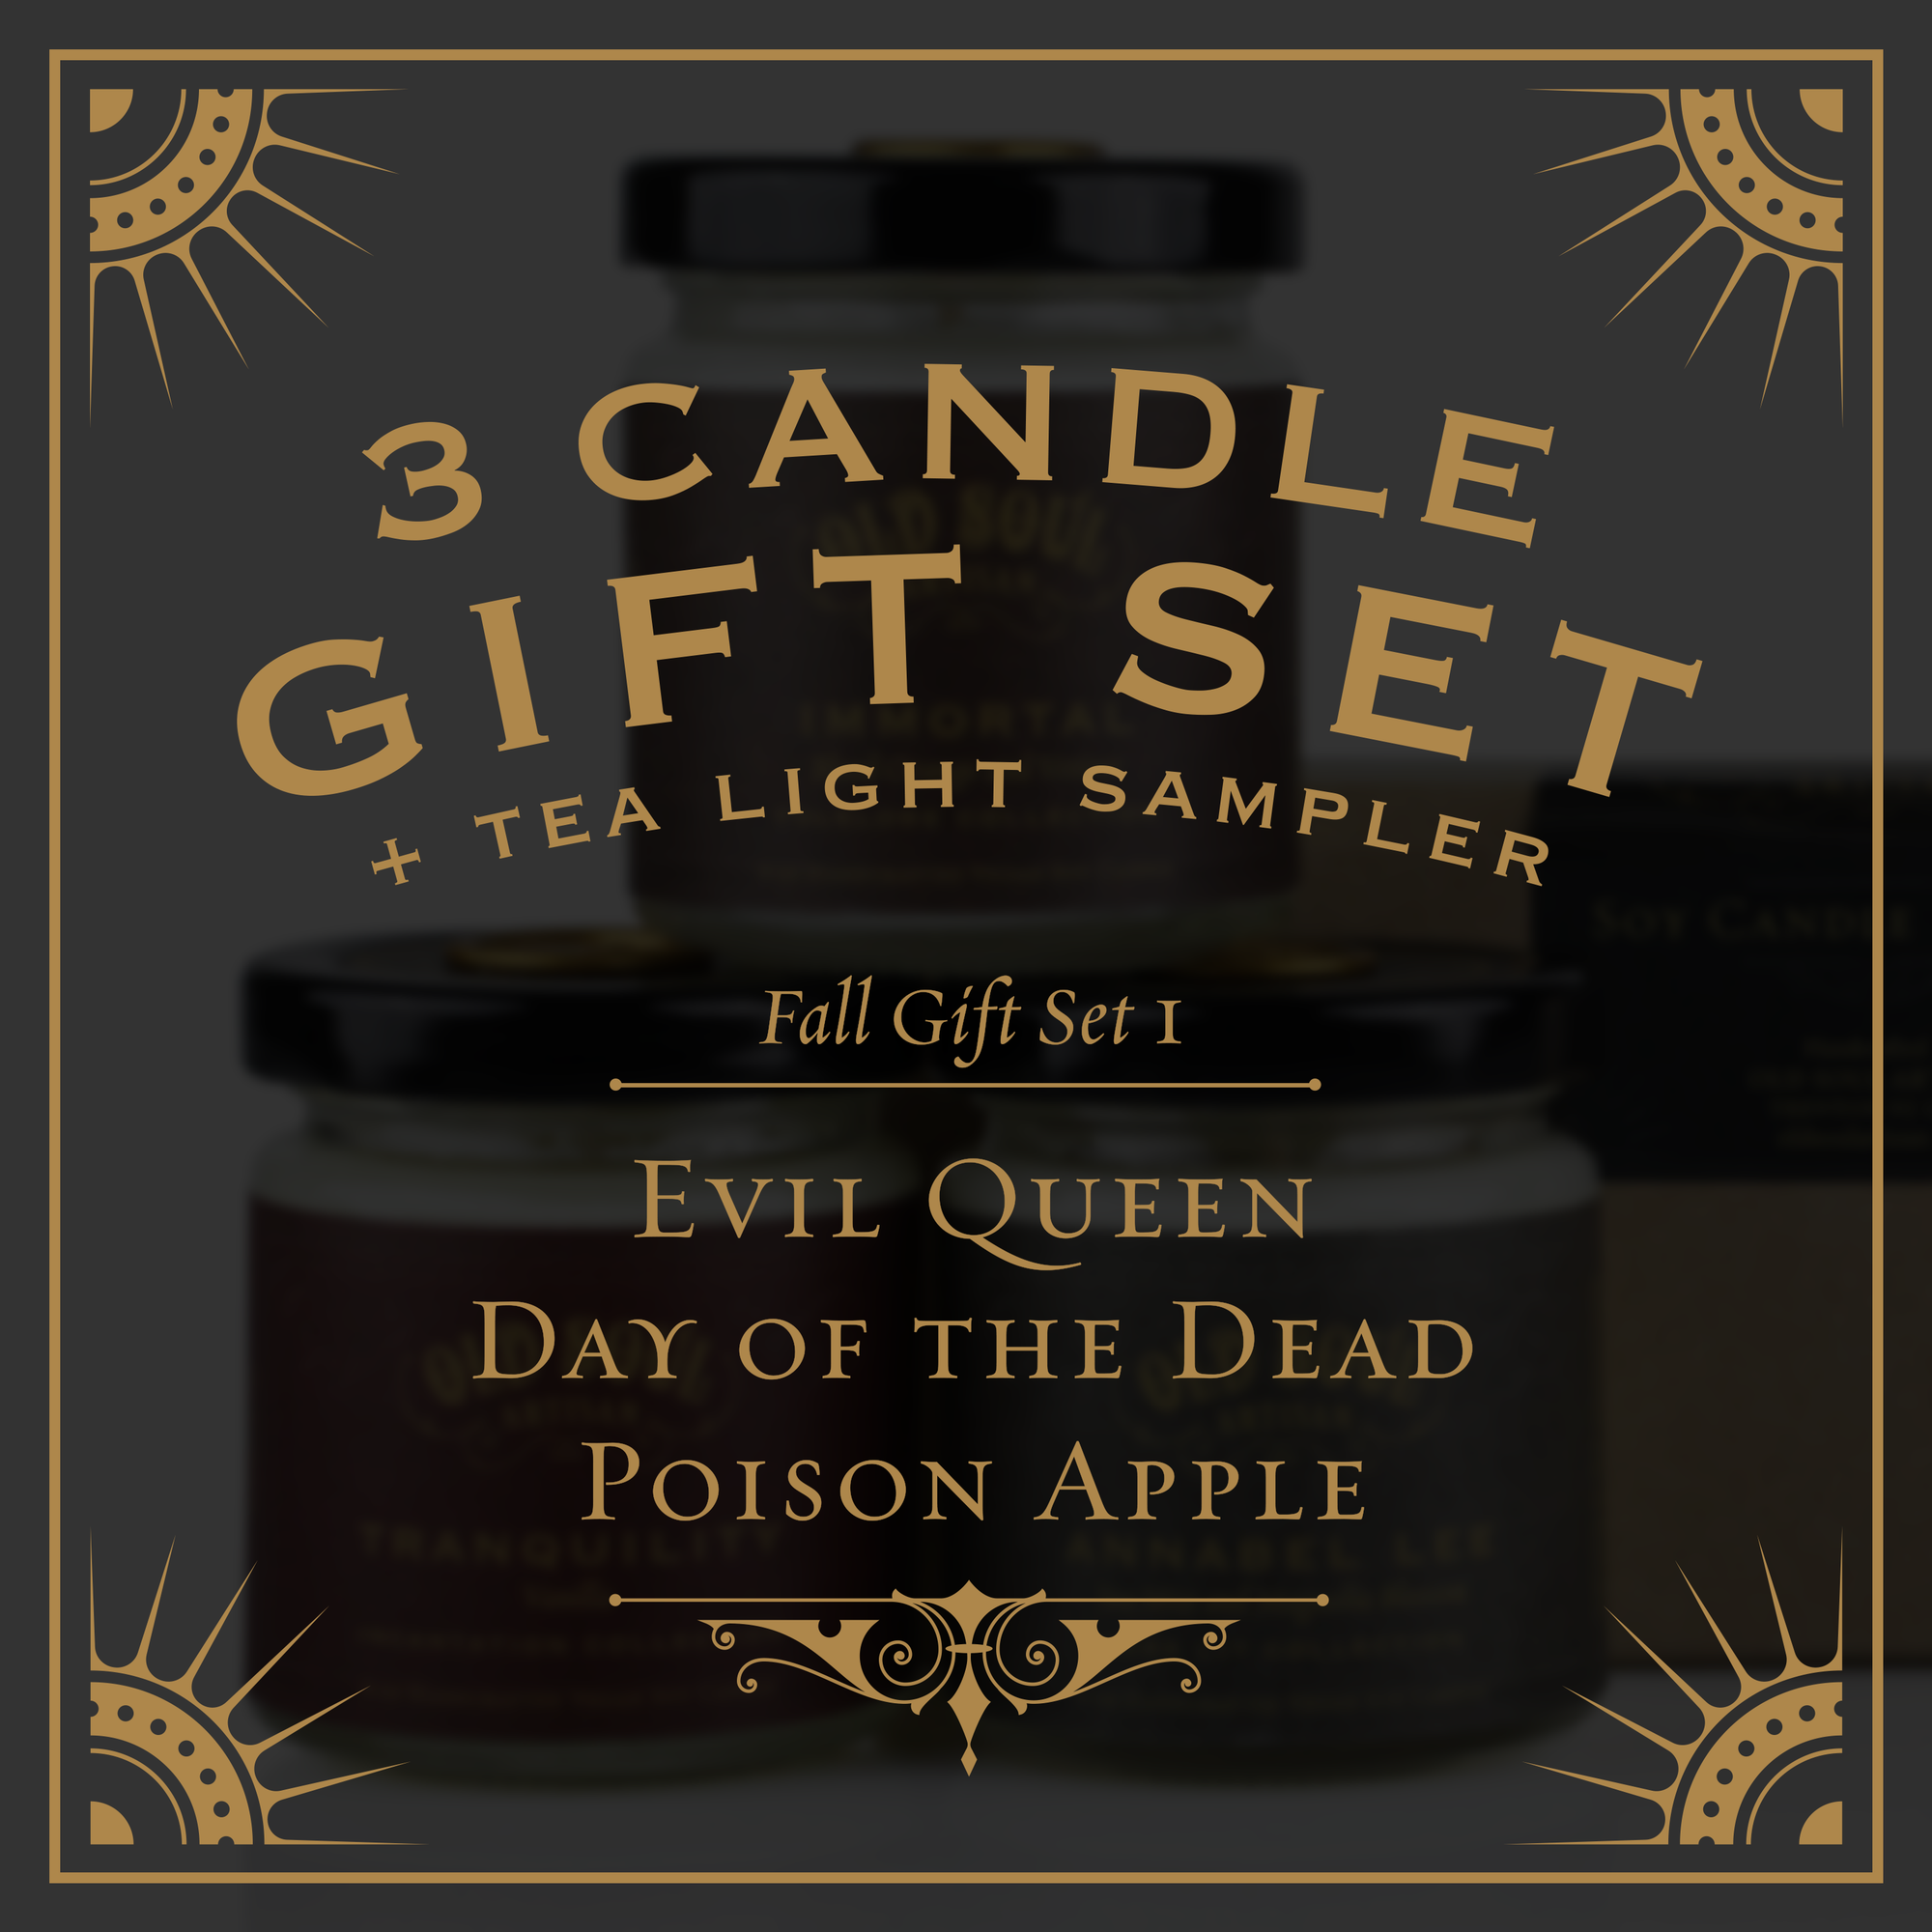 Fall Gift Set I - Evil Queen, Day of the Dead, Poison Apple